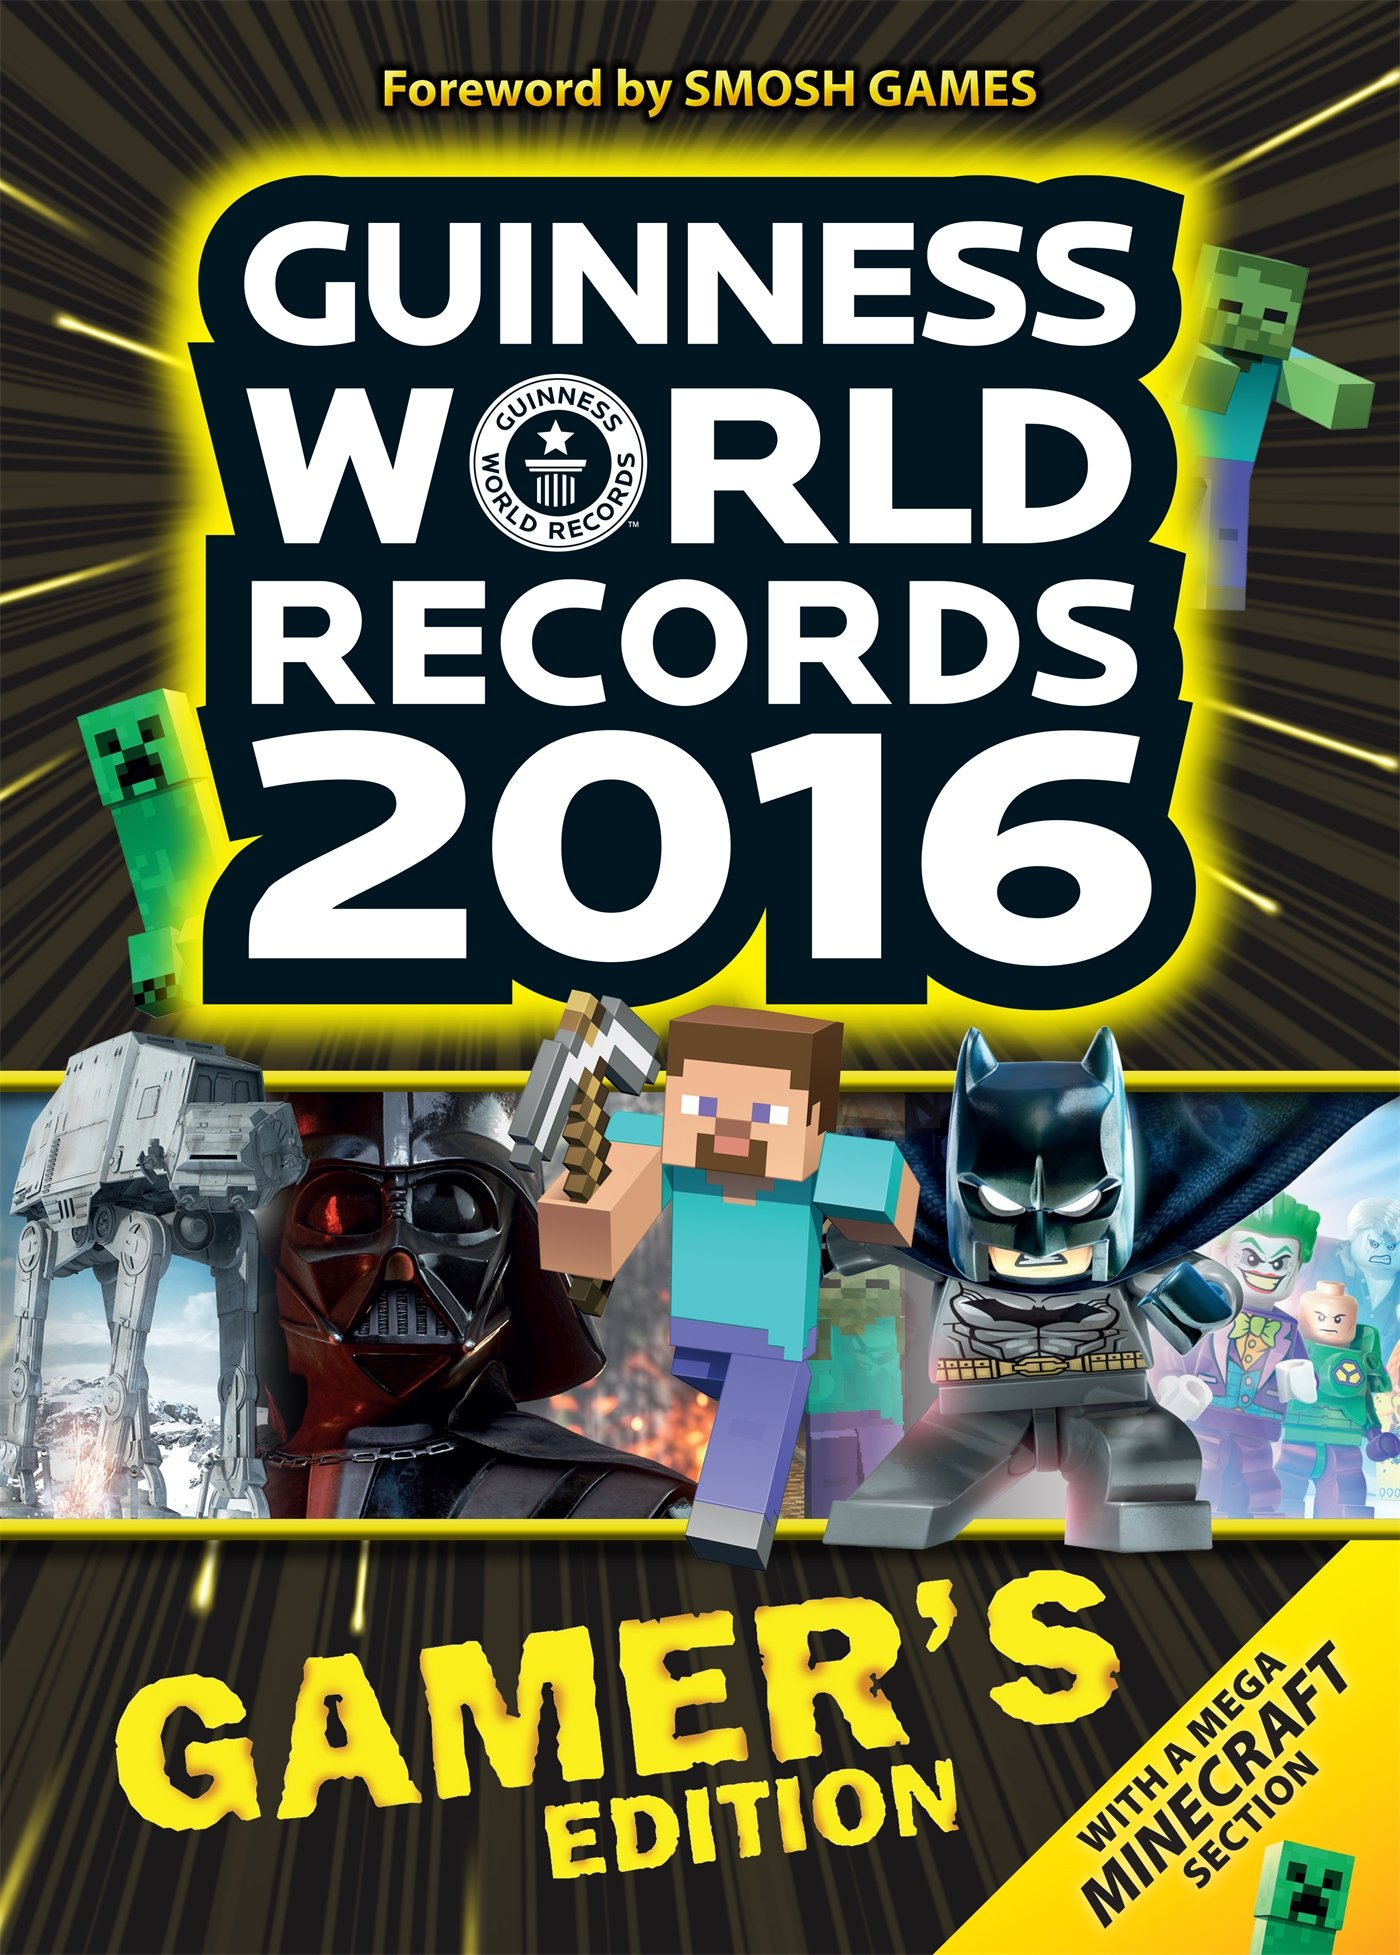 Guinness World Records 2016 Gamer's Edition book cover